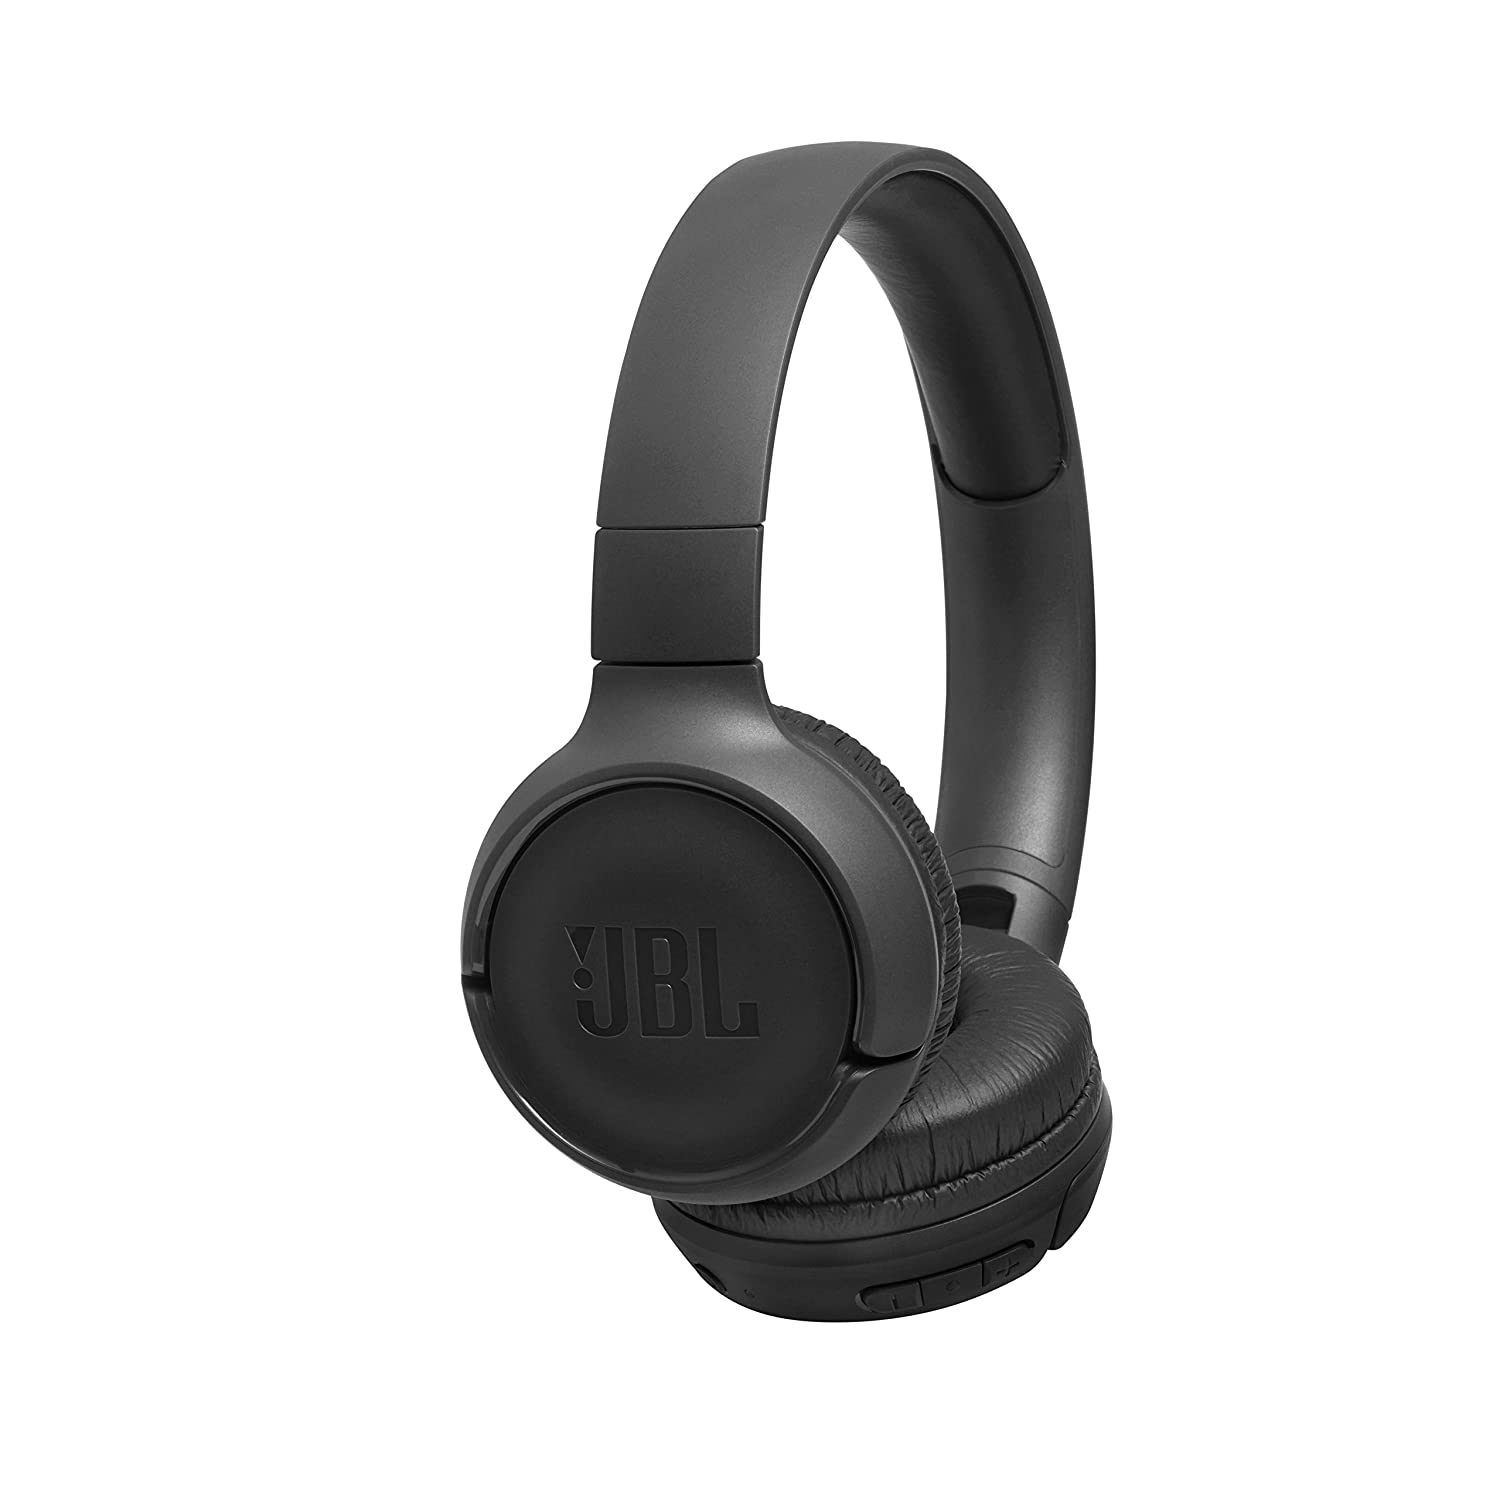 JBL Tune 500BT Powerful Bass Wireless On-Ear Headphones with